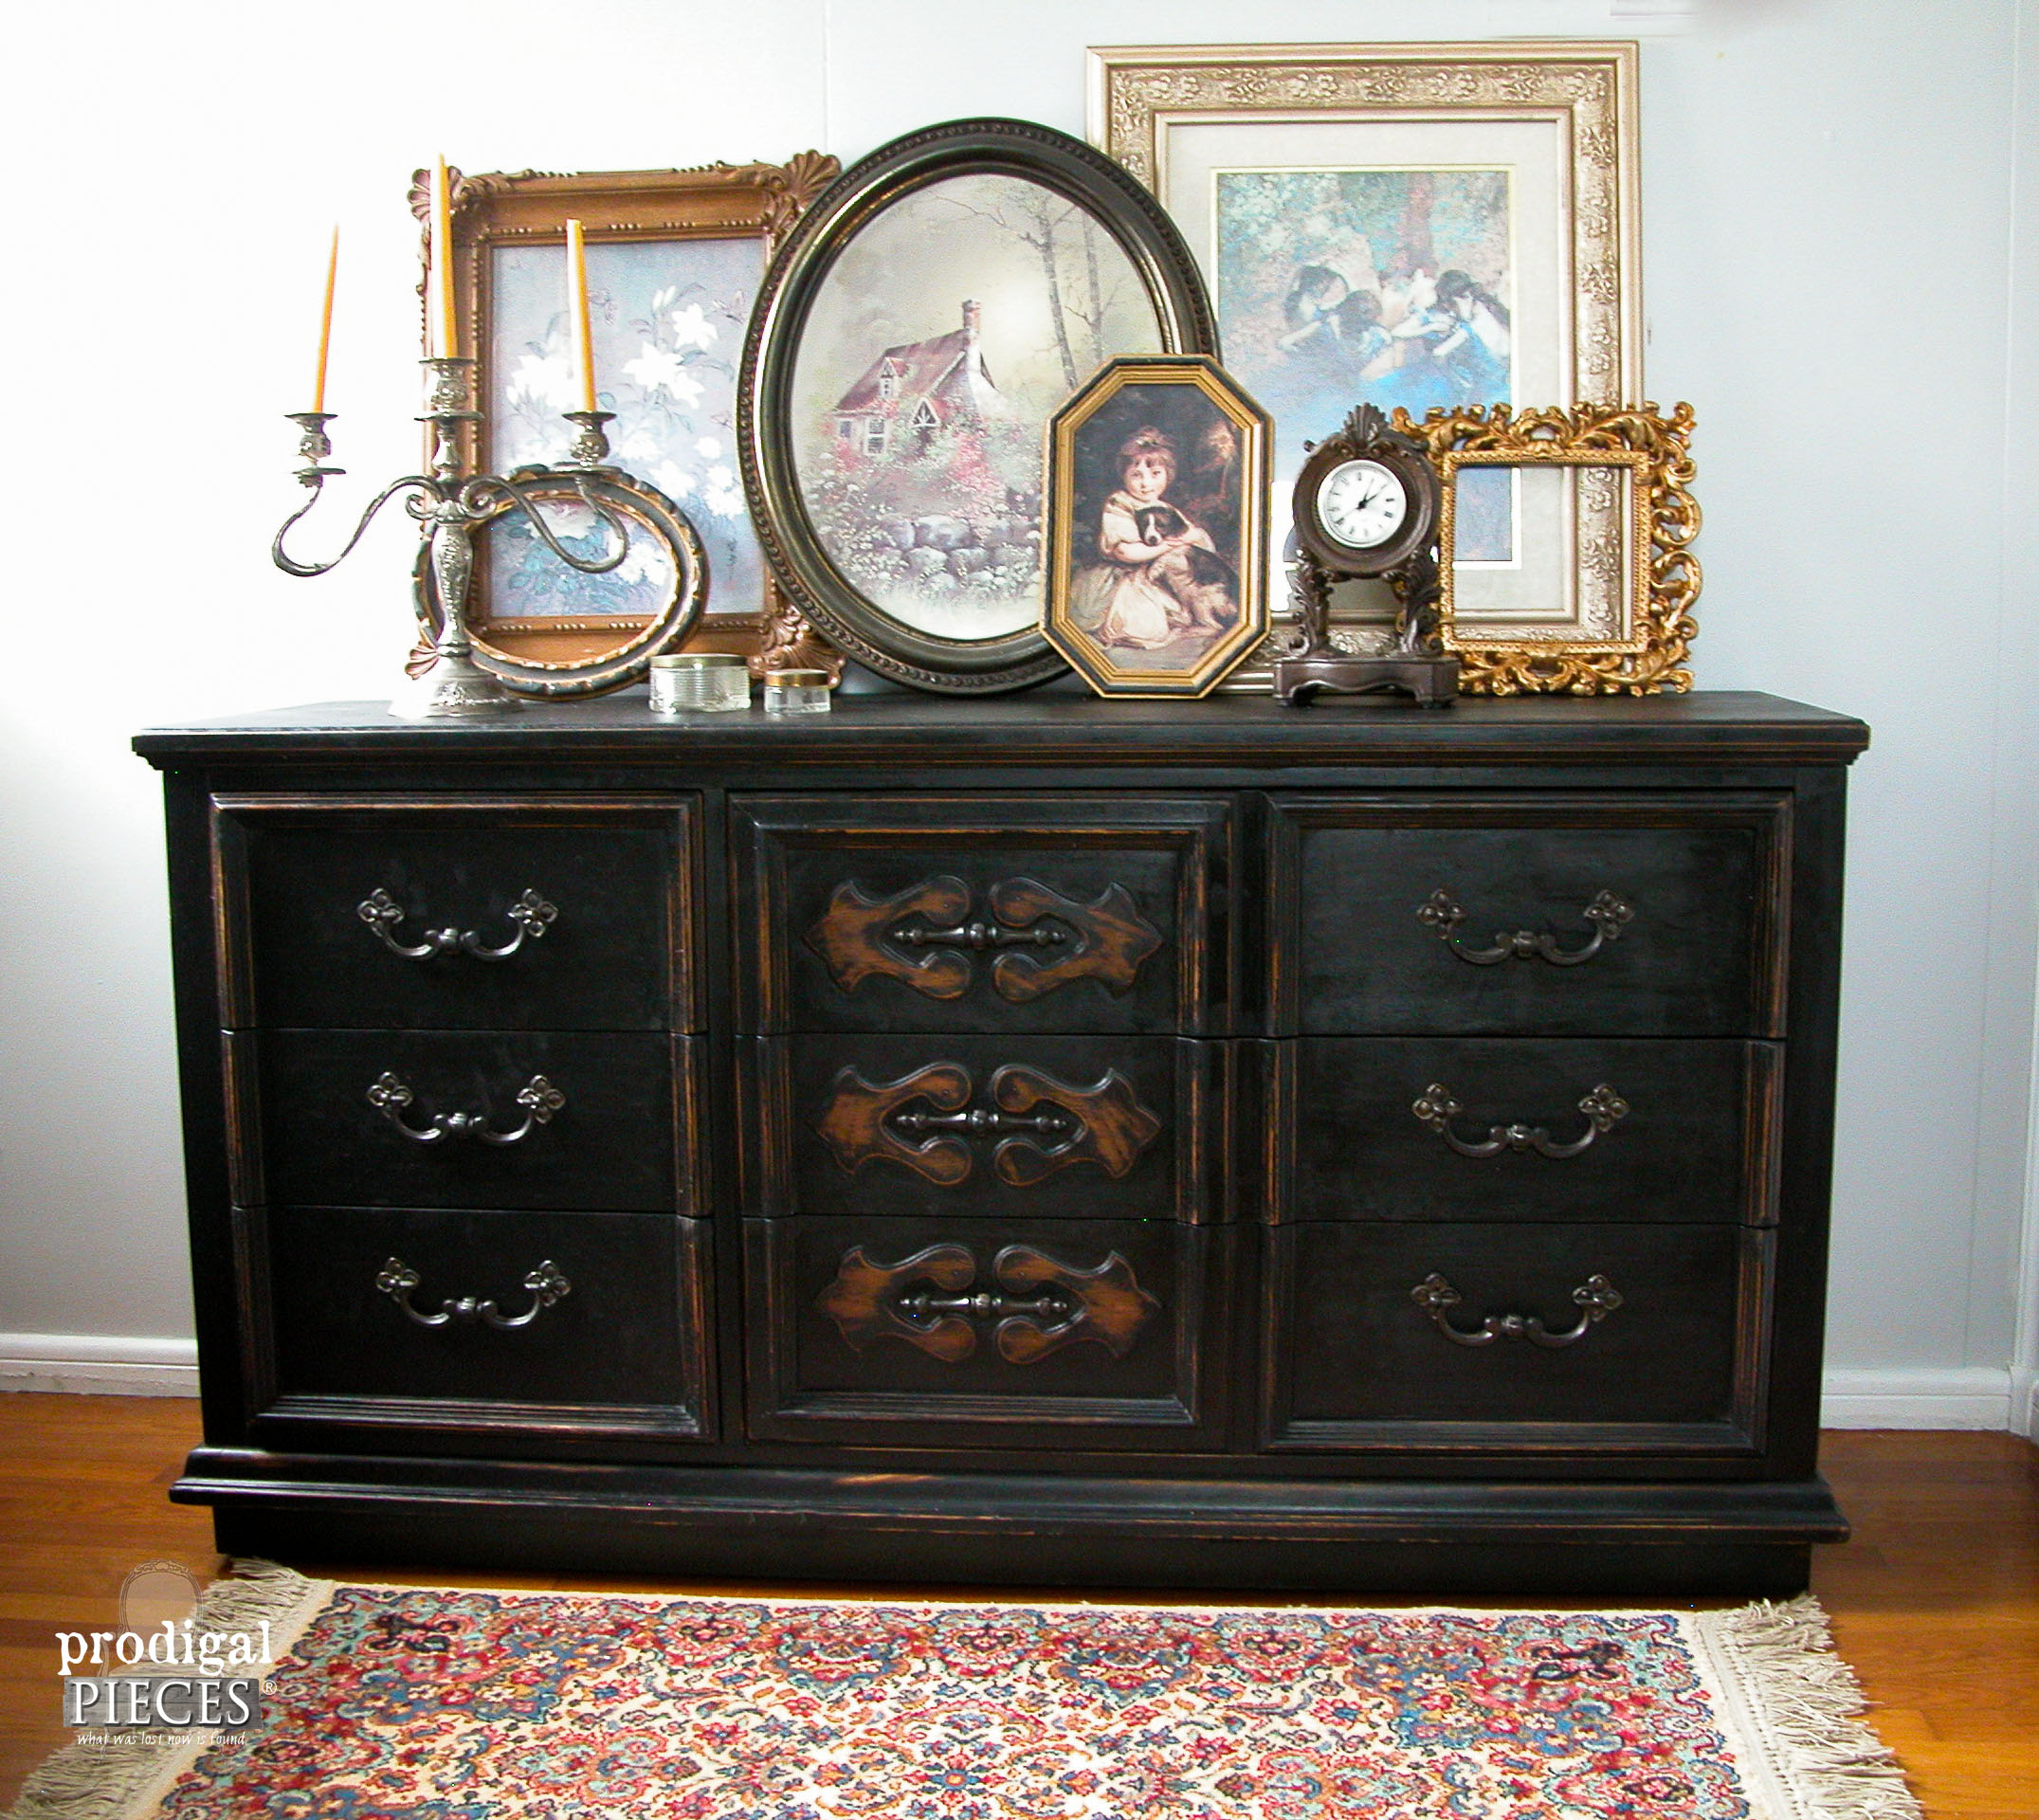 Outdated Mid Century Modern Black Dresser Makeover | Prodigal Pieces | www.prodigalpieces.com